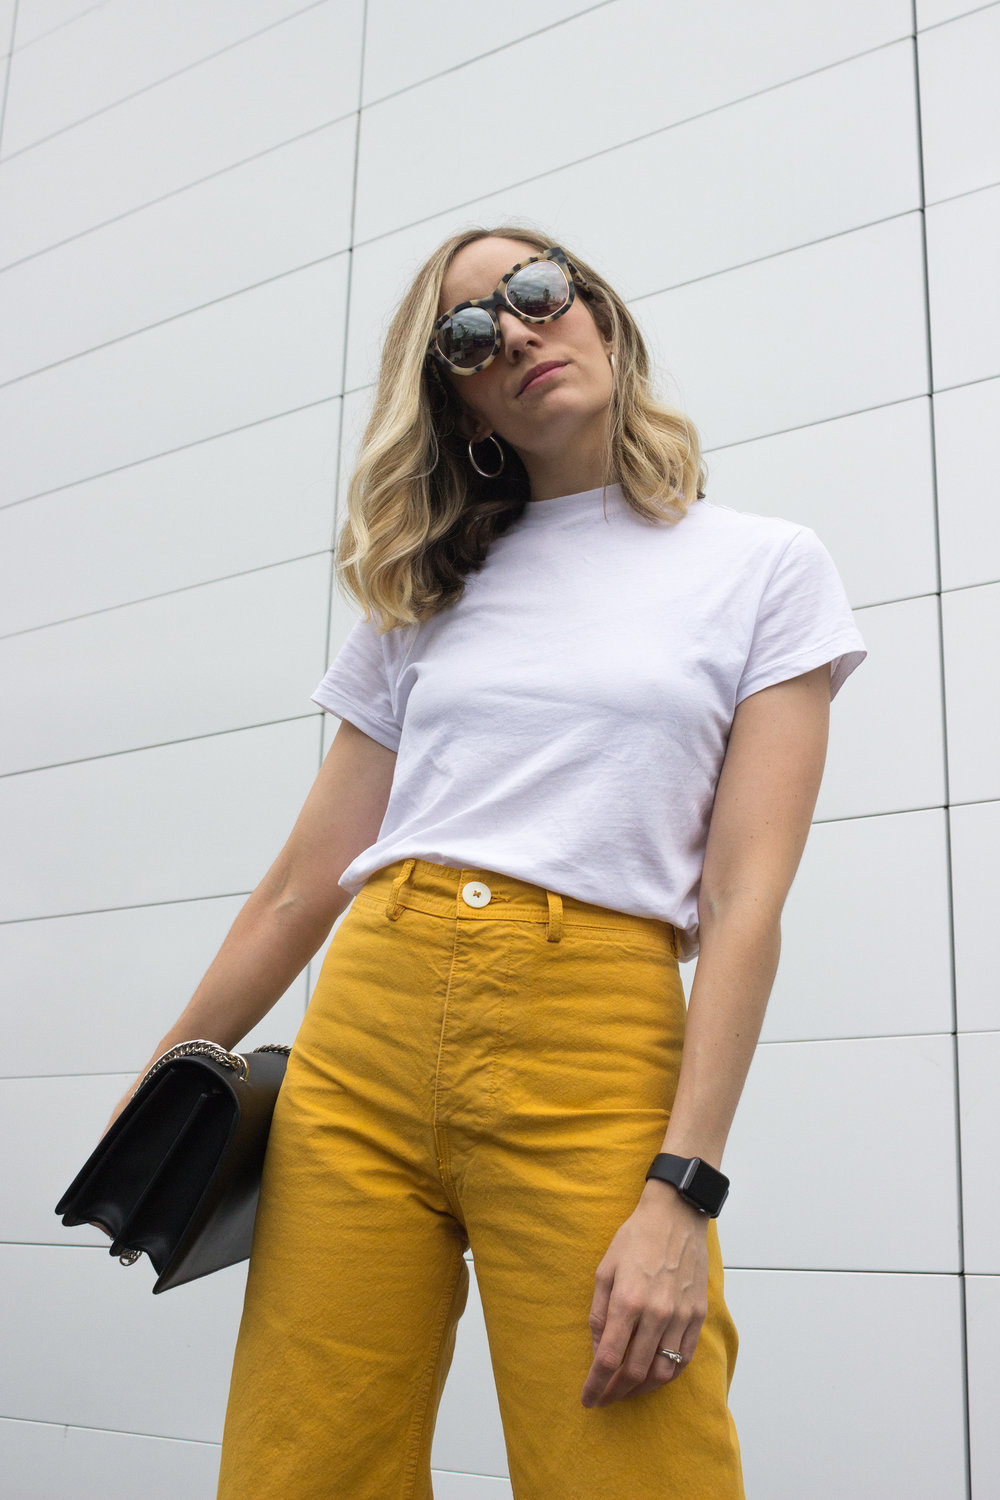 sharday-engel-jessie-kamm-yellow-pants-agneel-bag-vans-8.jpg